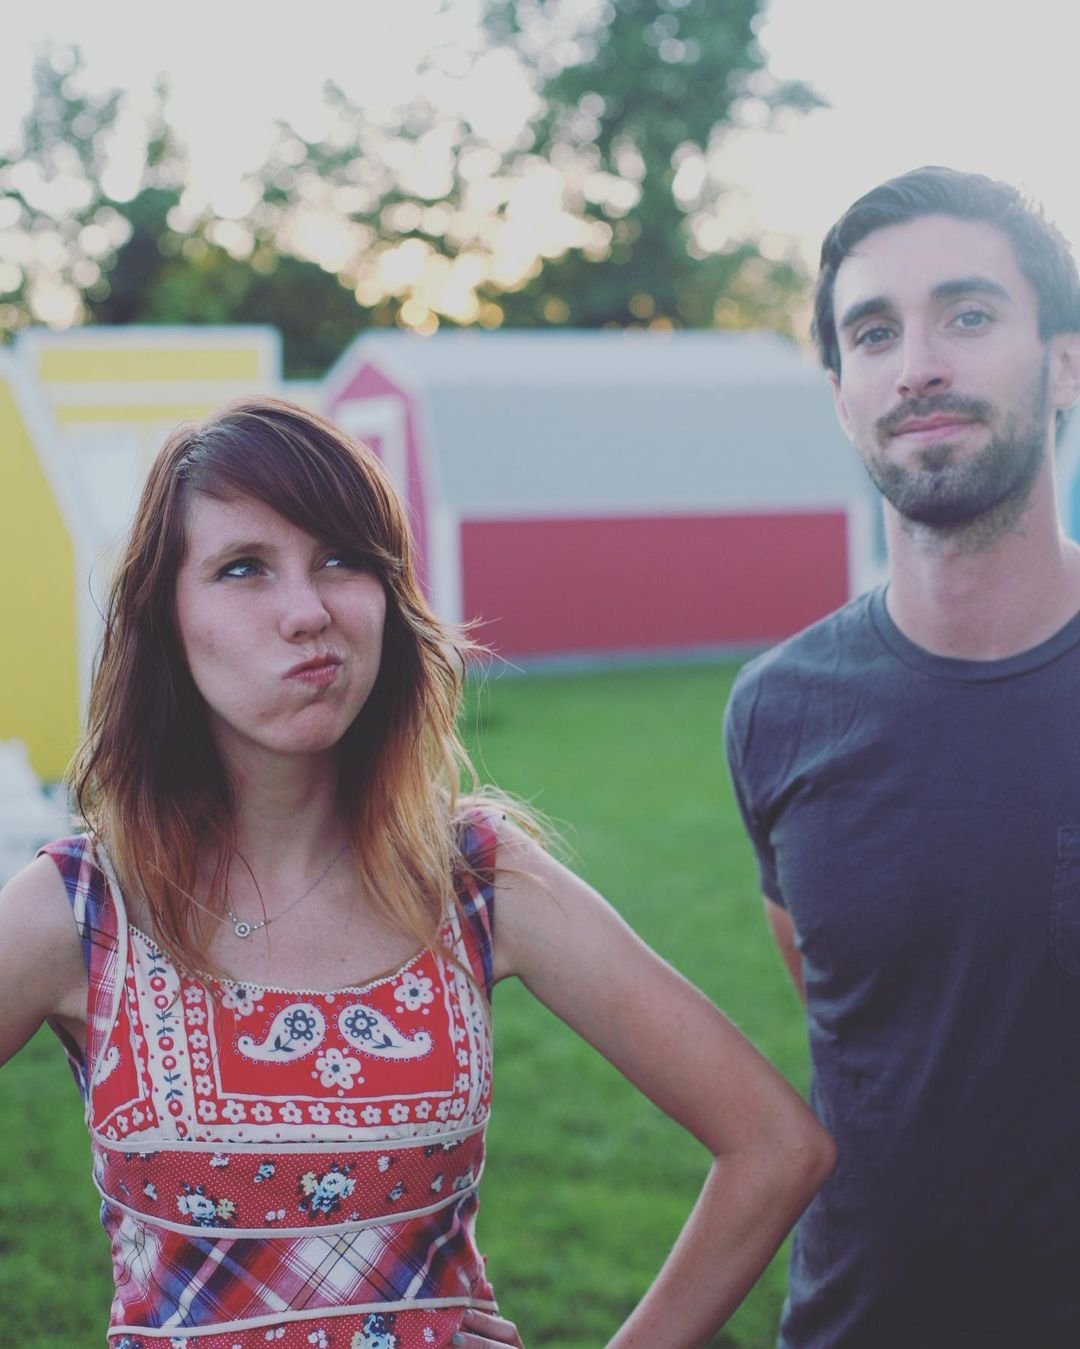 Suzie with a crooked smile and Jesse poses in front of a unfocused yard with red and yellow house shapes and grass